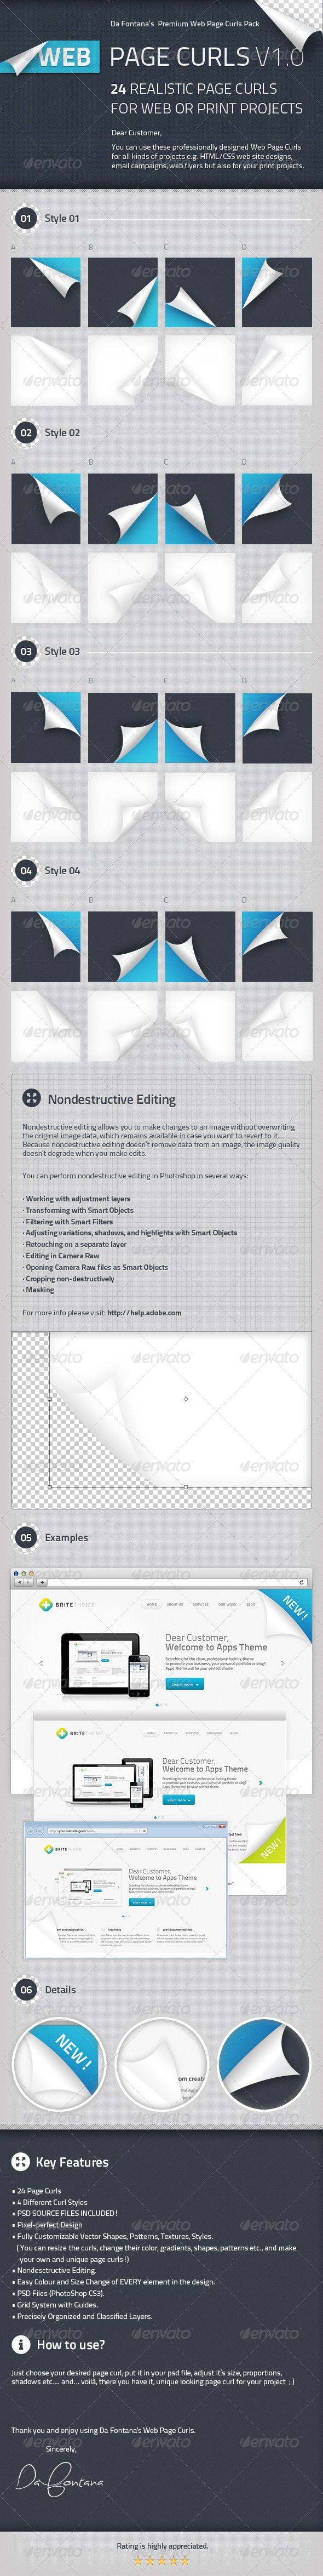 Page Curls and Corners  #GraphicRiver         Dear Customer,  	 You can use these professionally designed Web Page Curls for all kinds of projects e.g. HTML /CSS web site designs, email campaigns, web flyers but also for your print projects.  	 Sincerely,  	   	   	 • 24 Page Curls  	 • 4 Different Curl Styles  	 • PSD SOURCE FILES INCLUDED !  	 • Pixel-perfect Design  	 • Fully Customizable Vector Shapes, Patterns, Textures, Styles.   ( You can resize the curls, change their color…